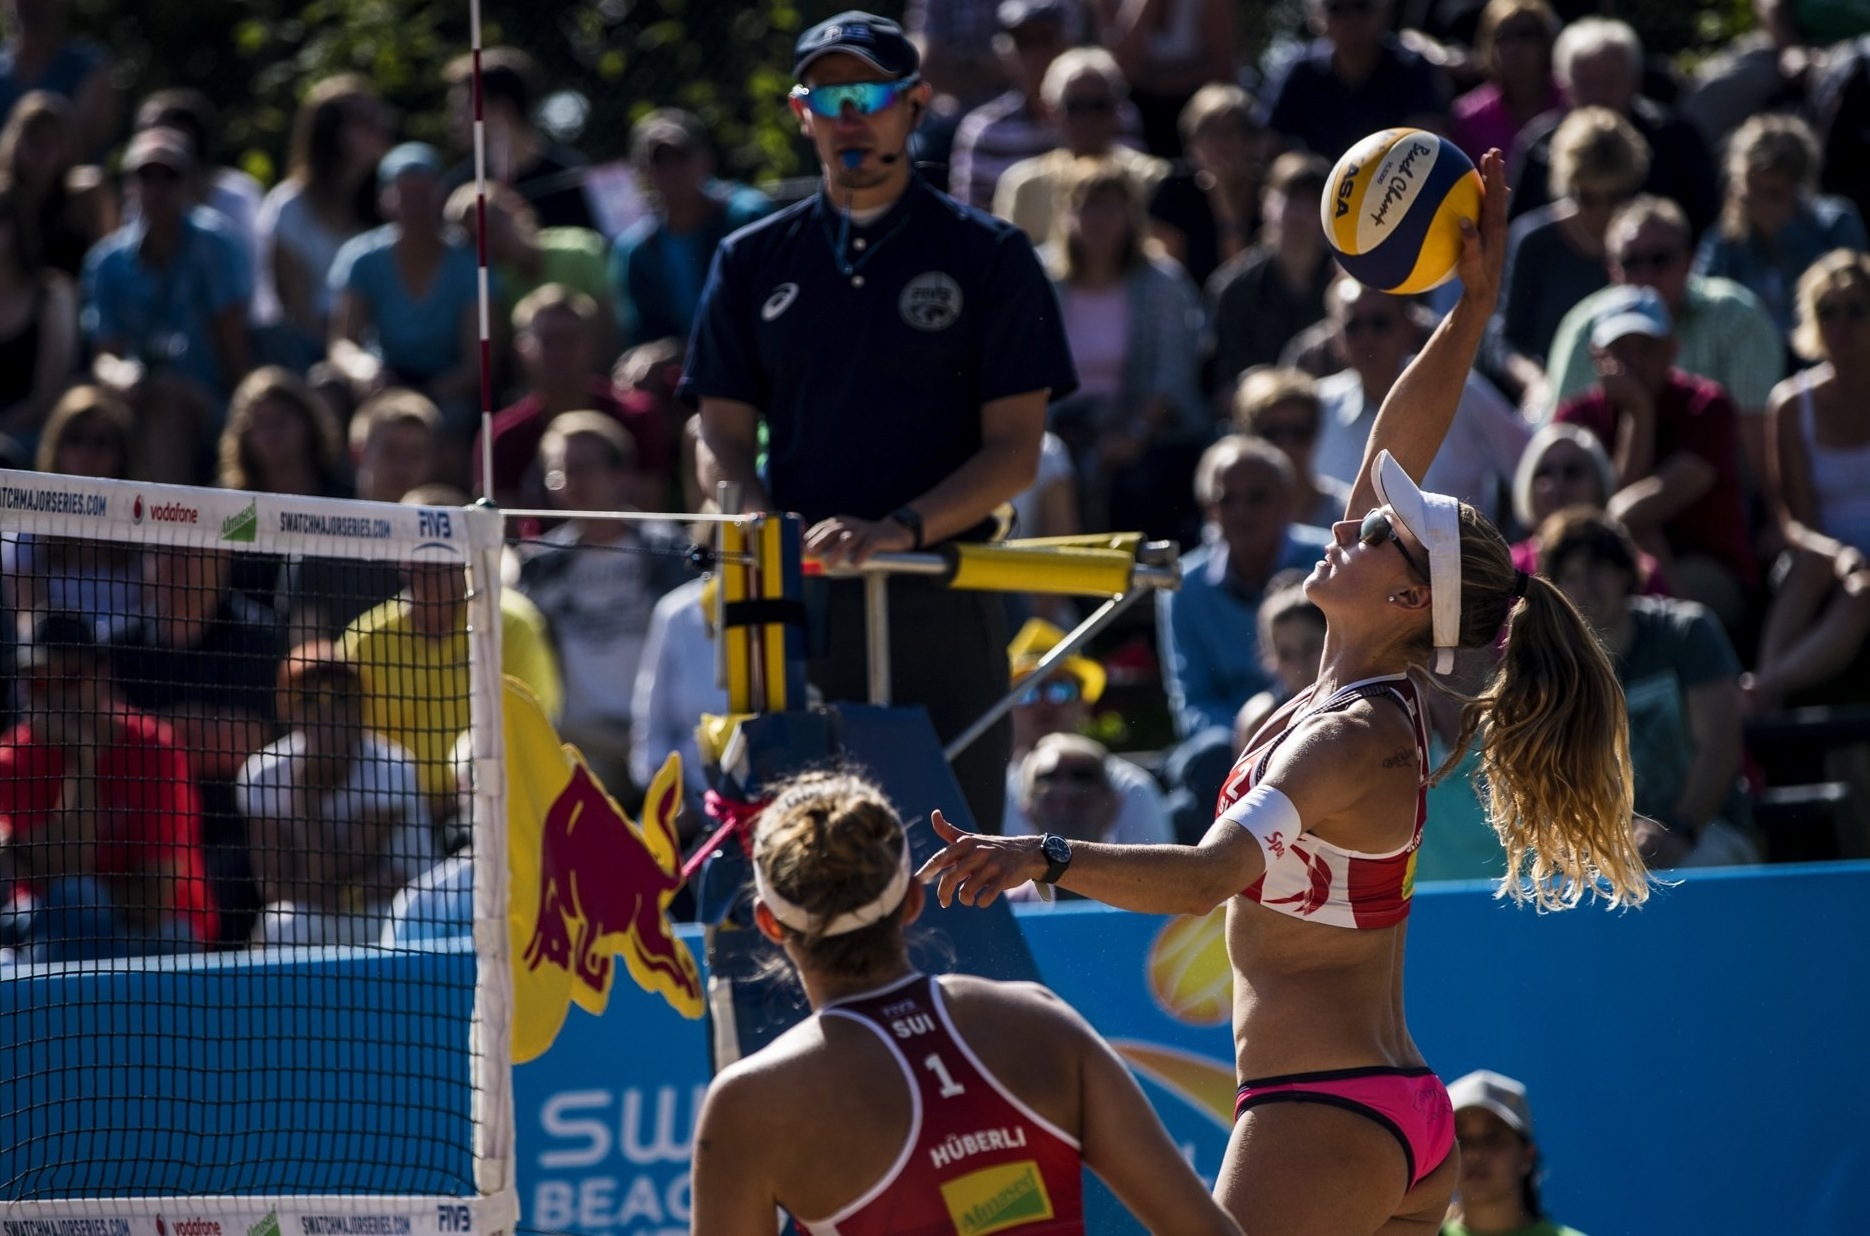 Tanja and Nina in action against Brazil in their first World Tour Finals appearance